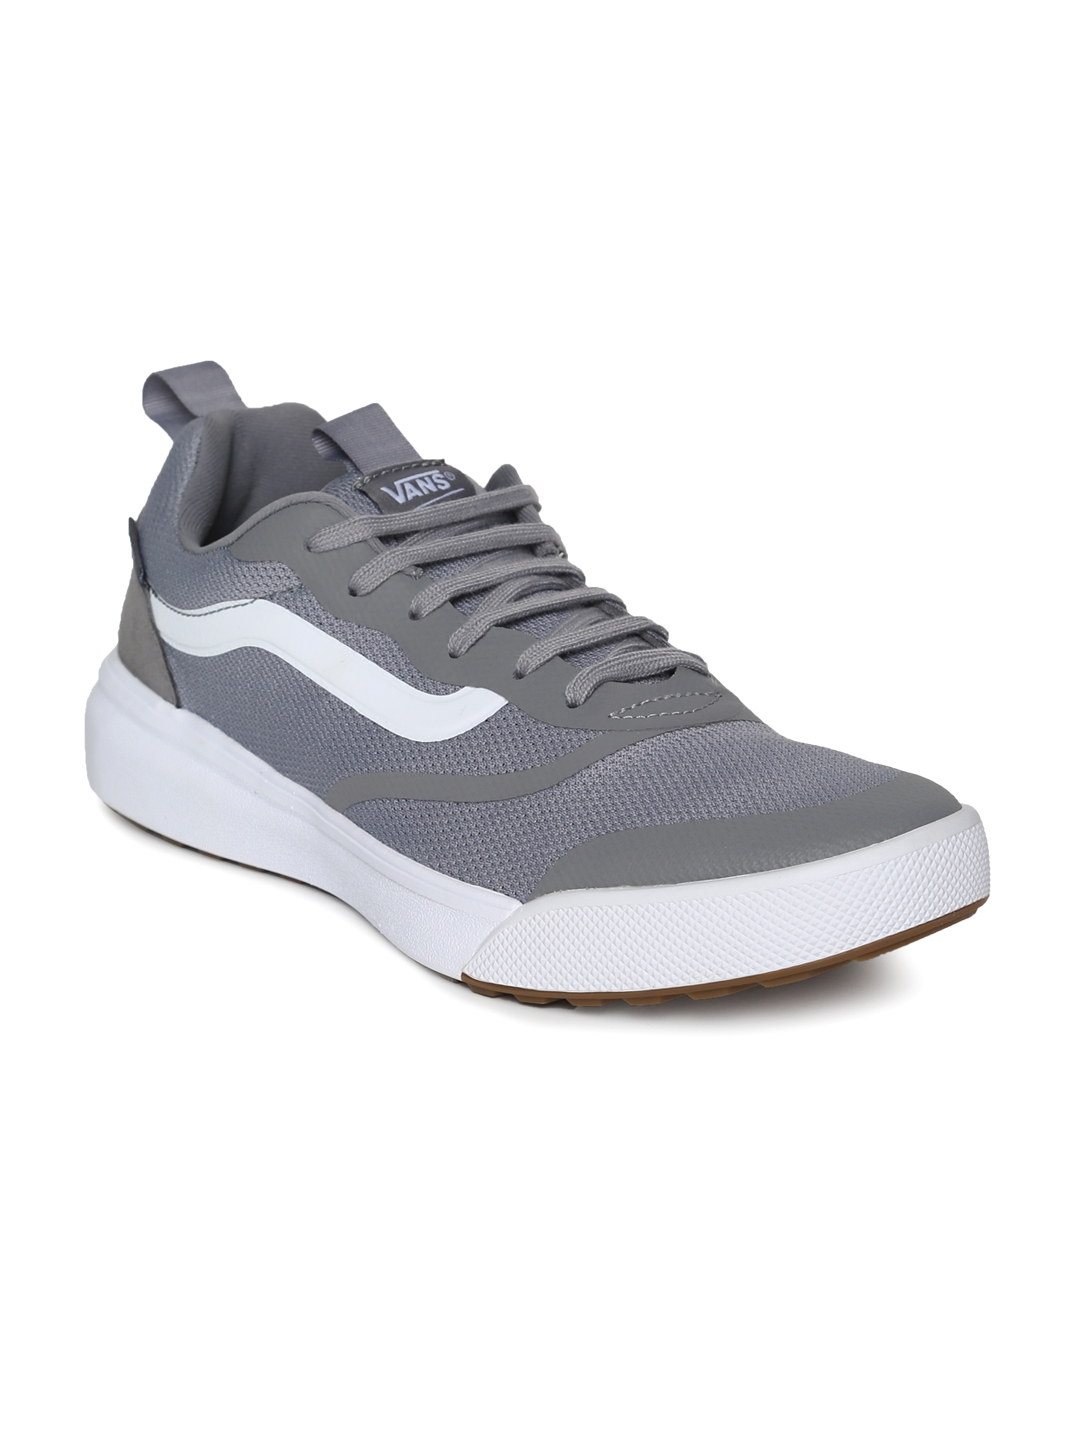 Buy Vans Men Grey UltraRange Rapidweld Sneakers - Casual Shoes for ... 3422b00e2